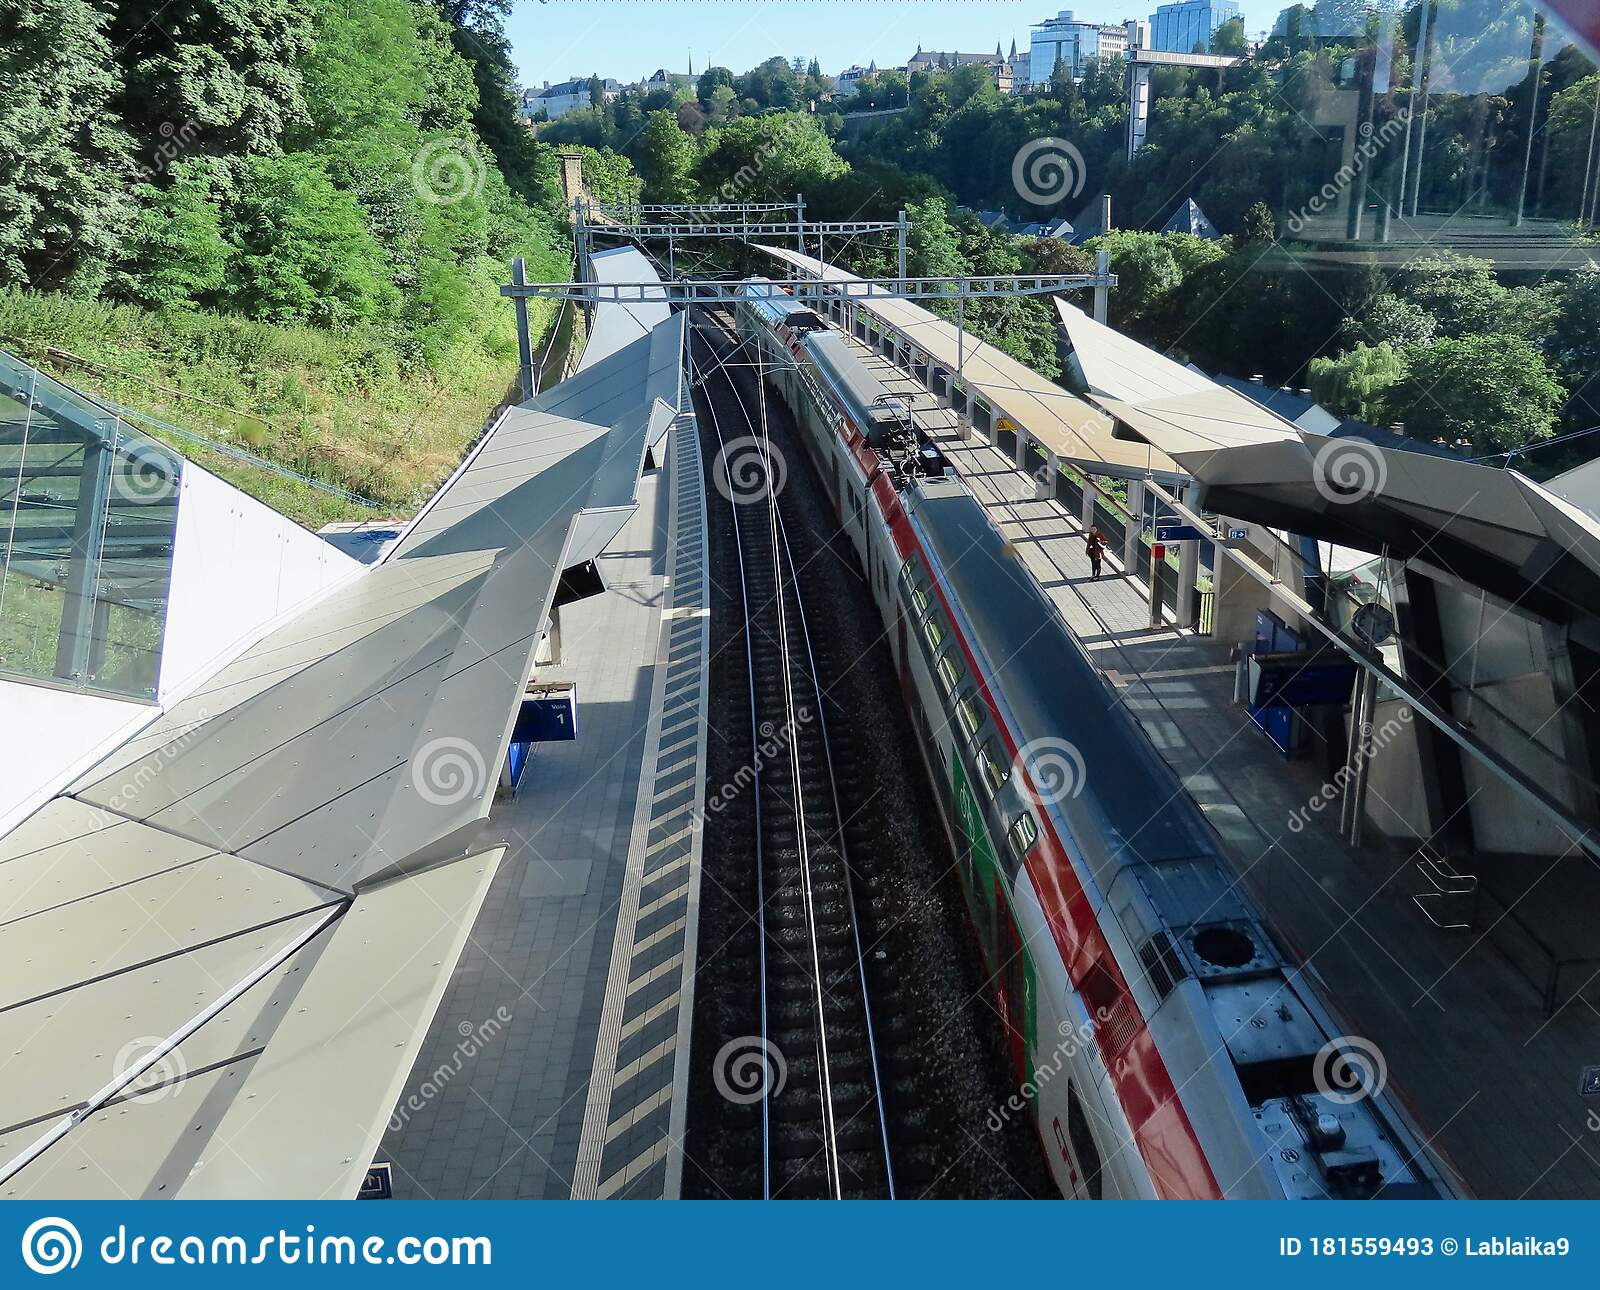 Train Station View From Above Color Stock Photo - Image of